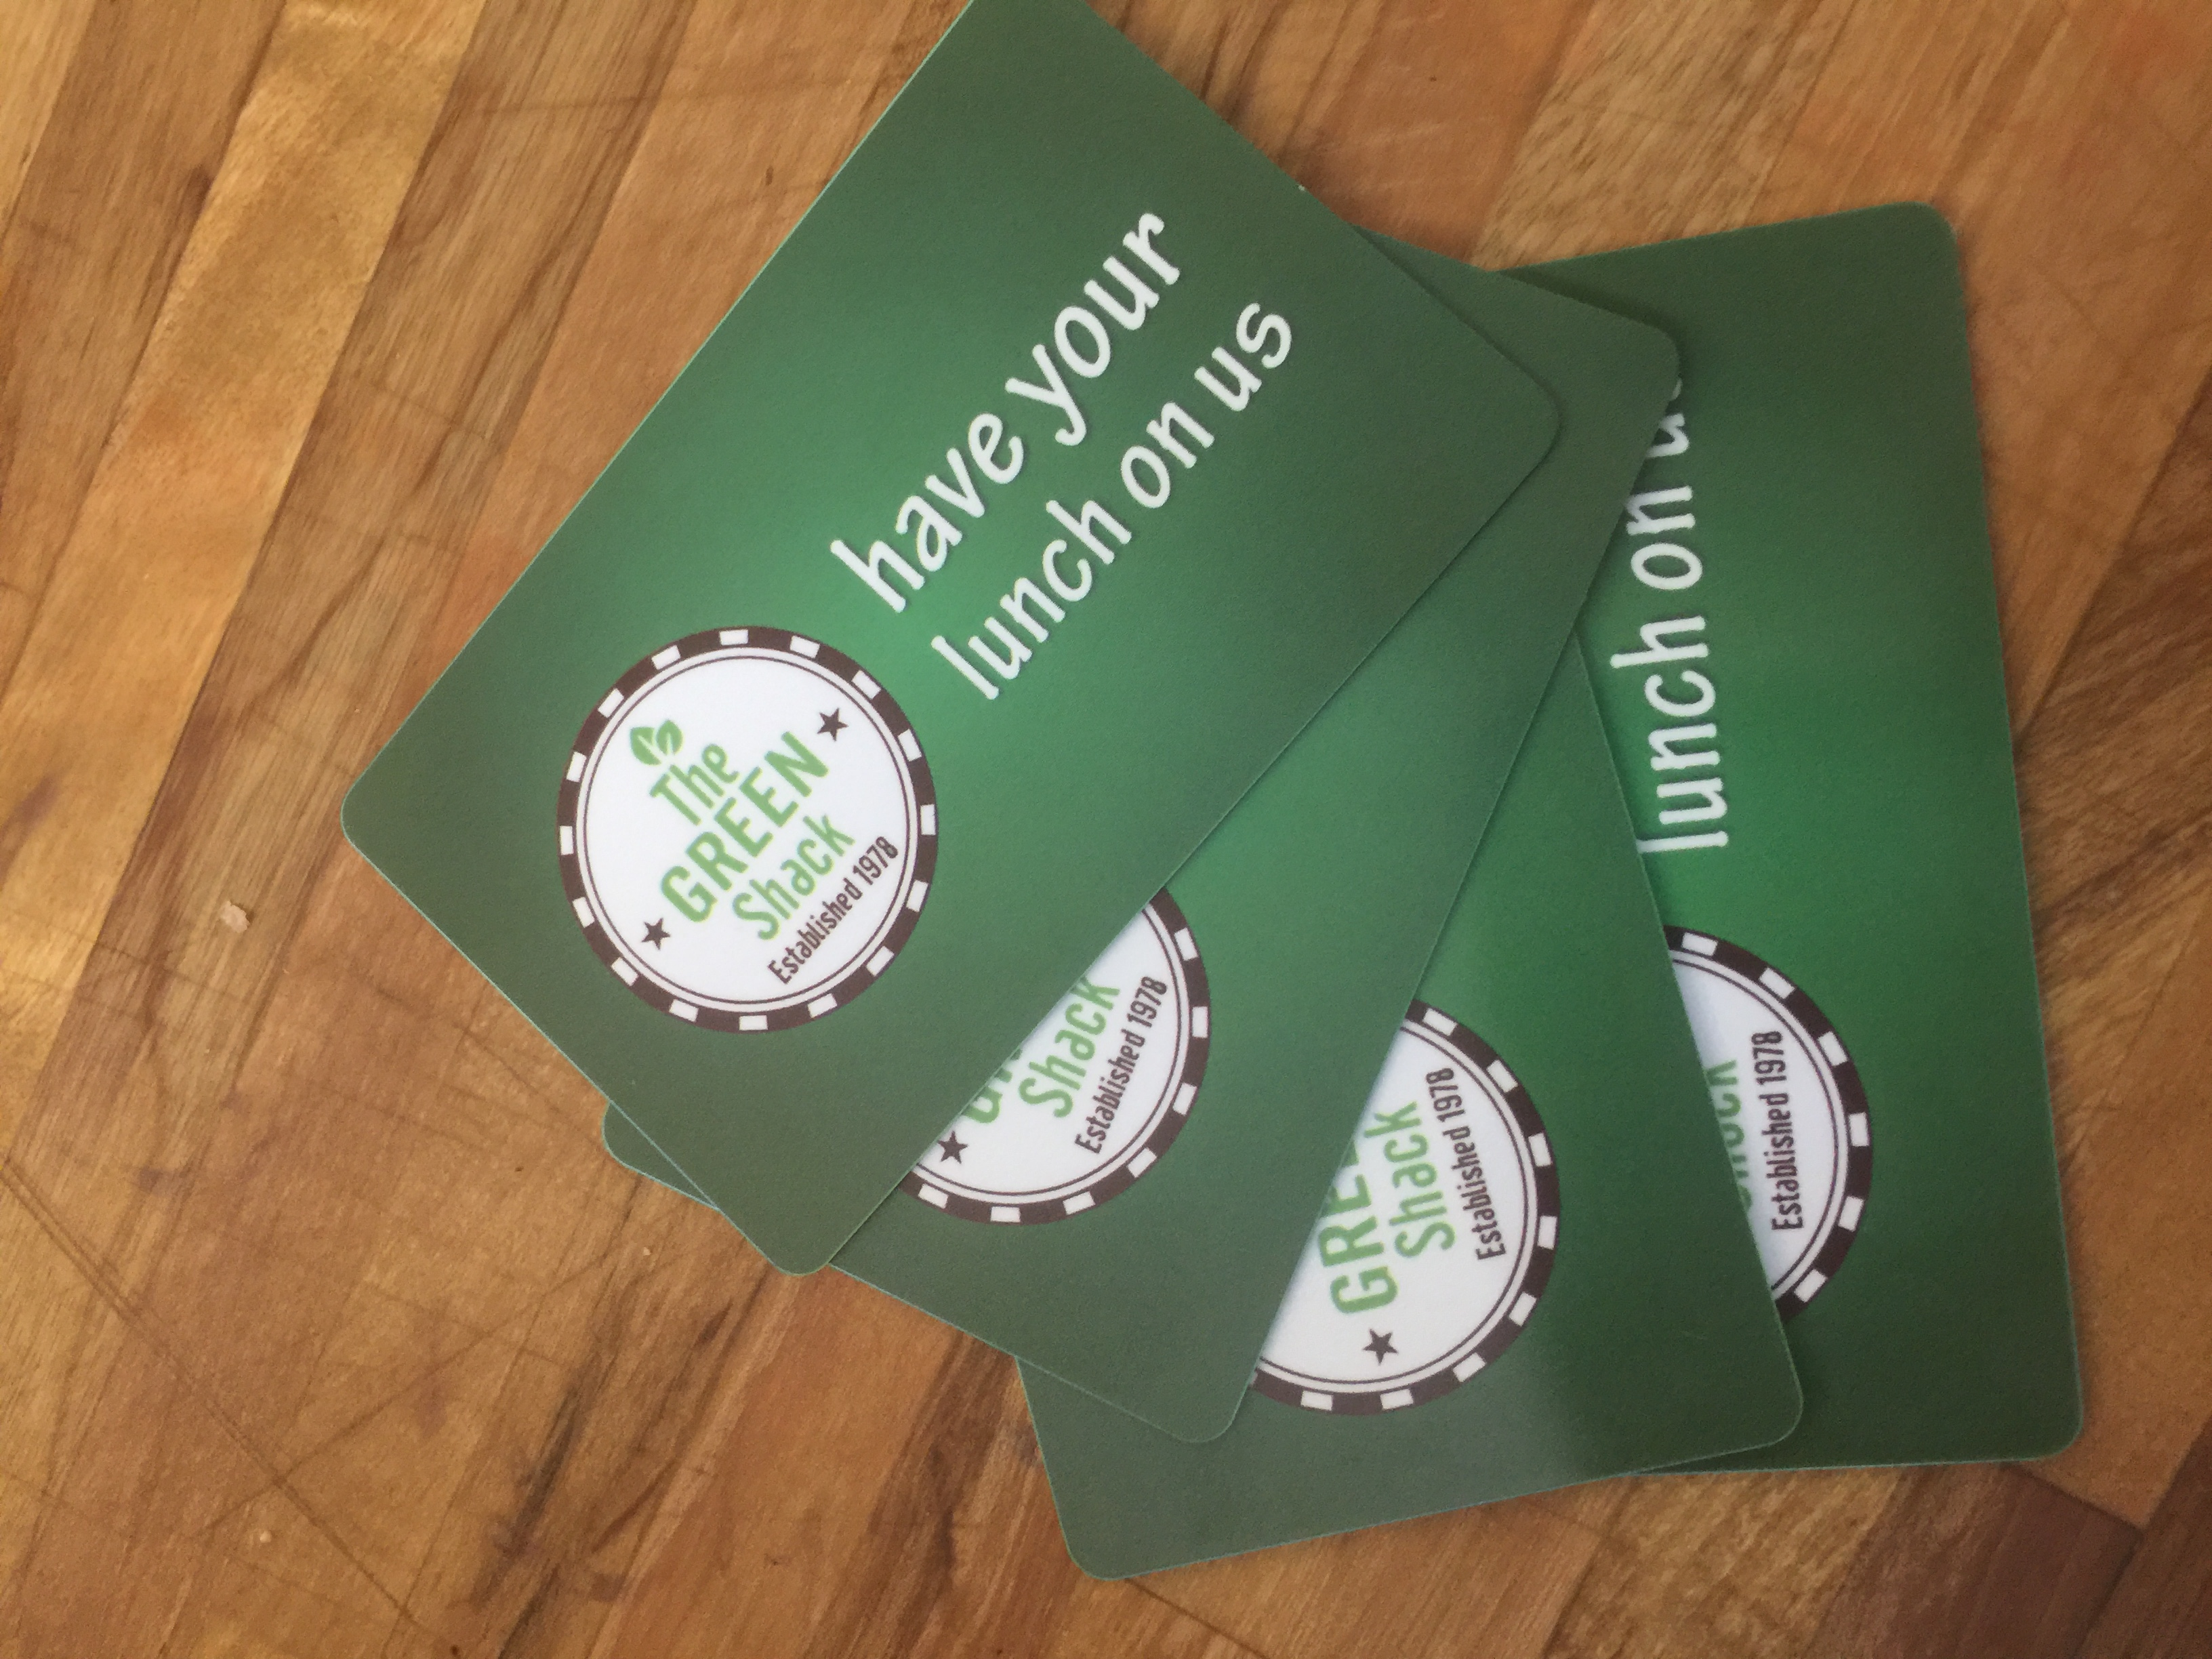 Green shack gift cards now available green shack you can now get yourself or someone else a green shack gift card simply ask for a gift card at the register load it up with as much money as solutioingenieria Gallery